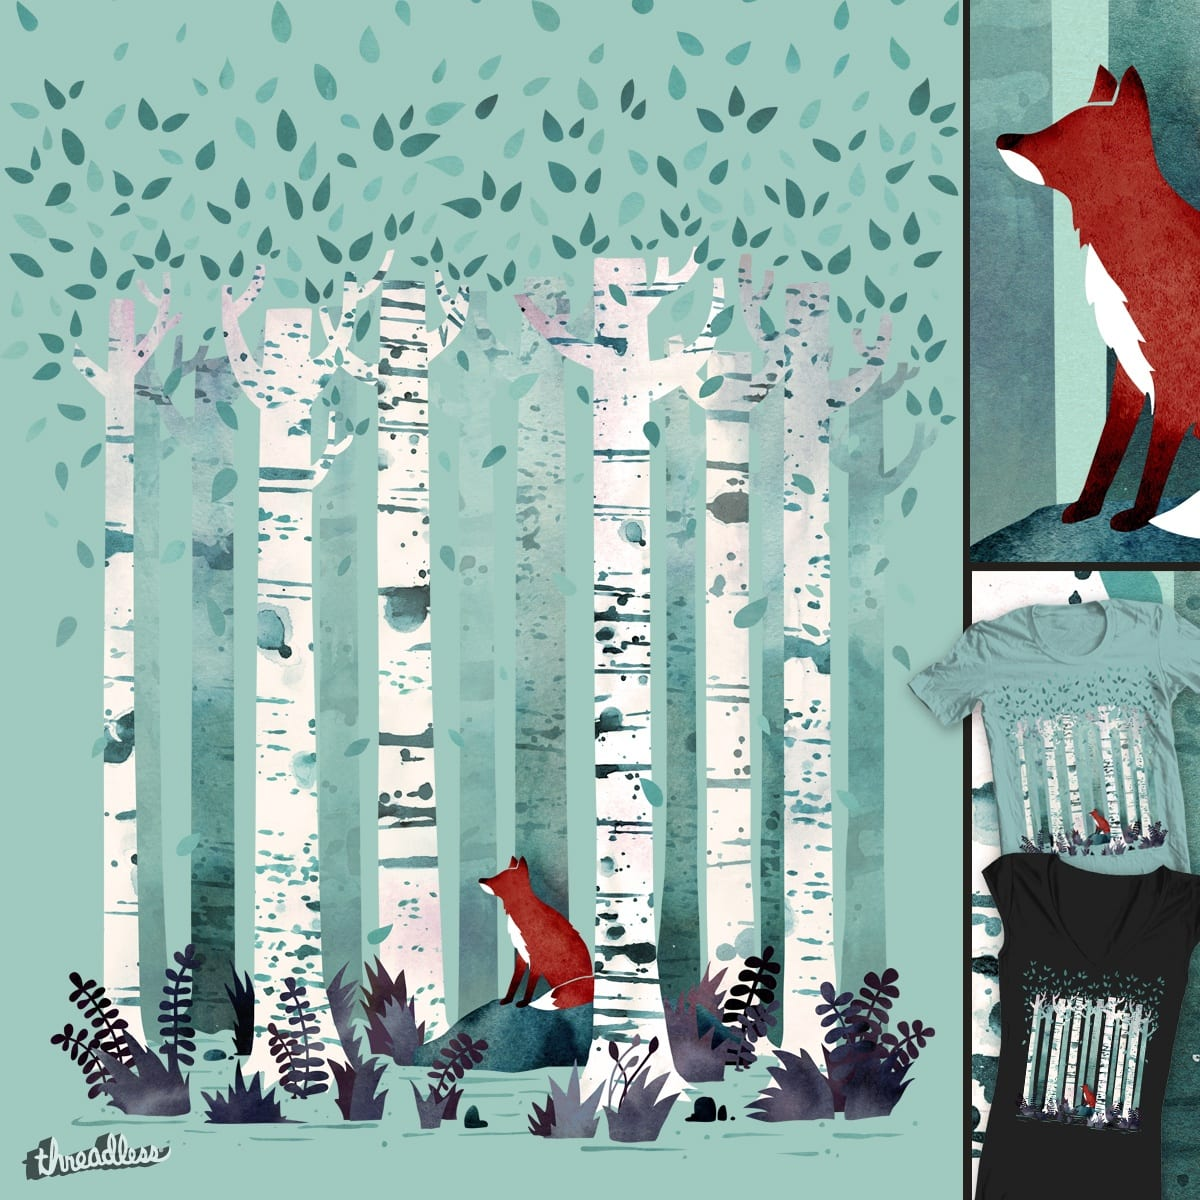 The Birches by littleclyde on Threadless